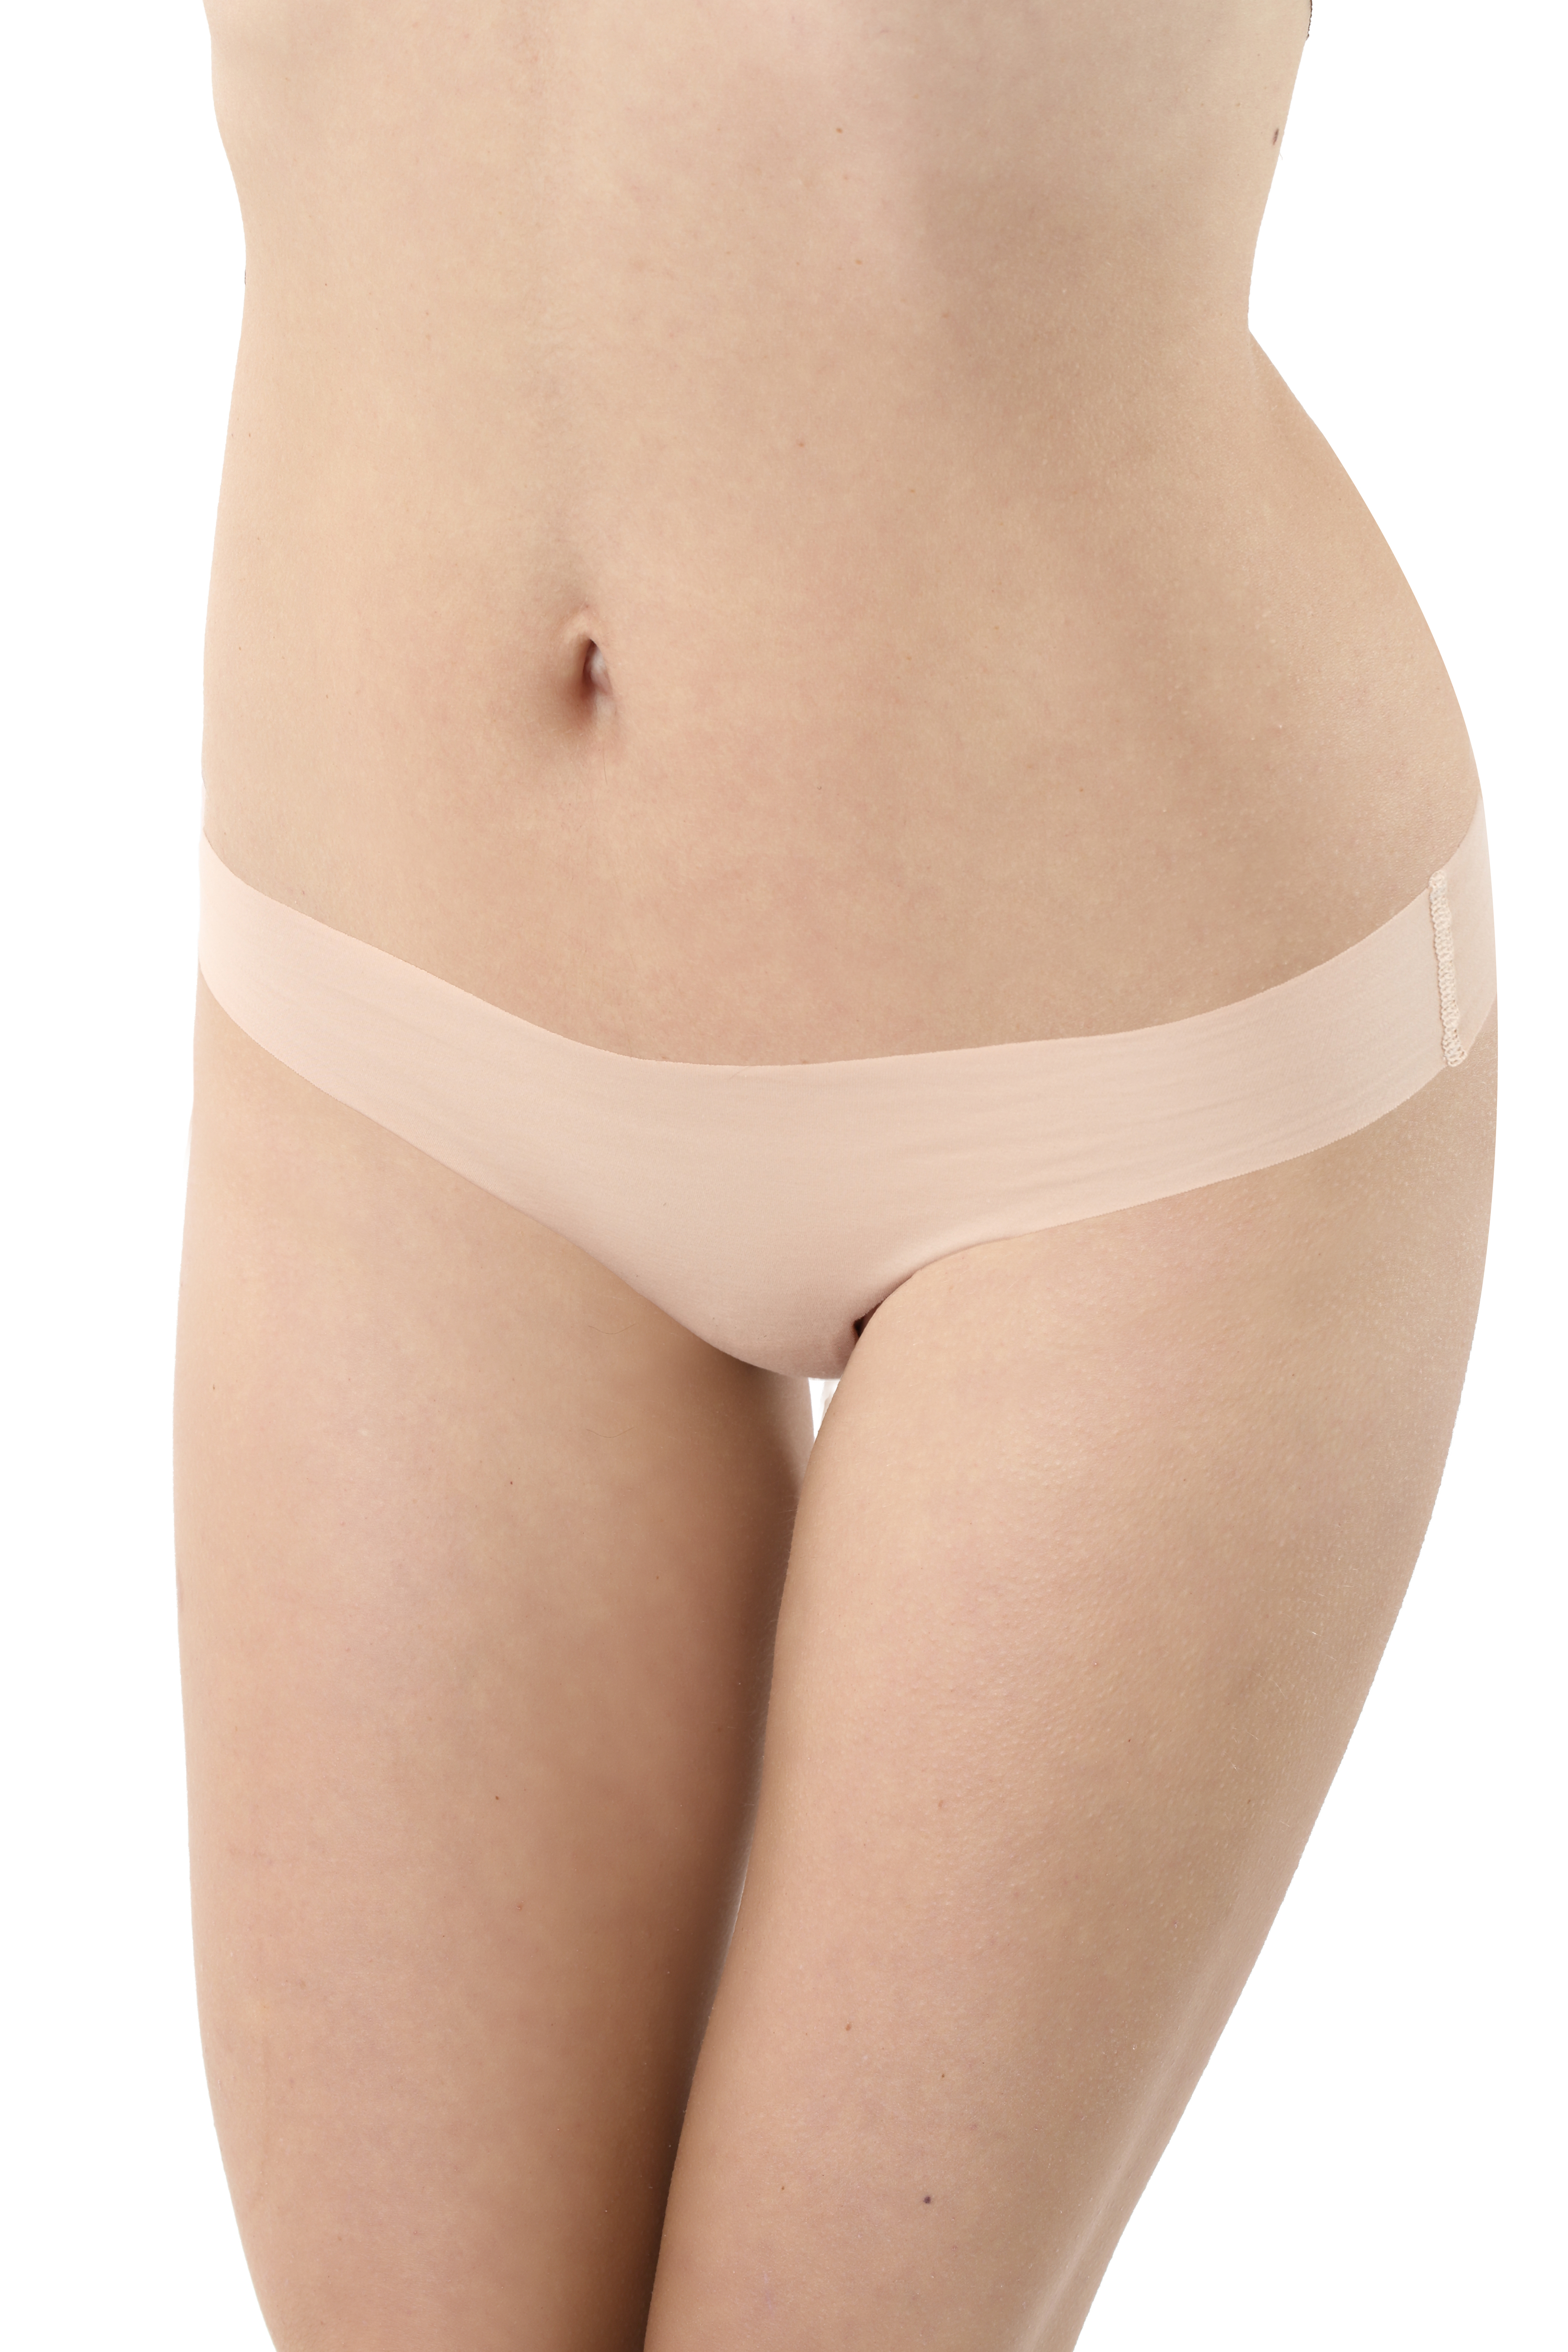 BF-03150, Tencel Low-rise Brief 3 pack, Nude | SATAMI Lingerie